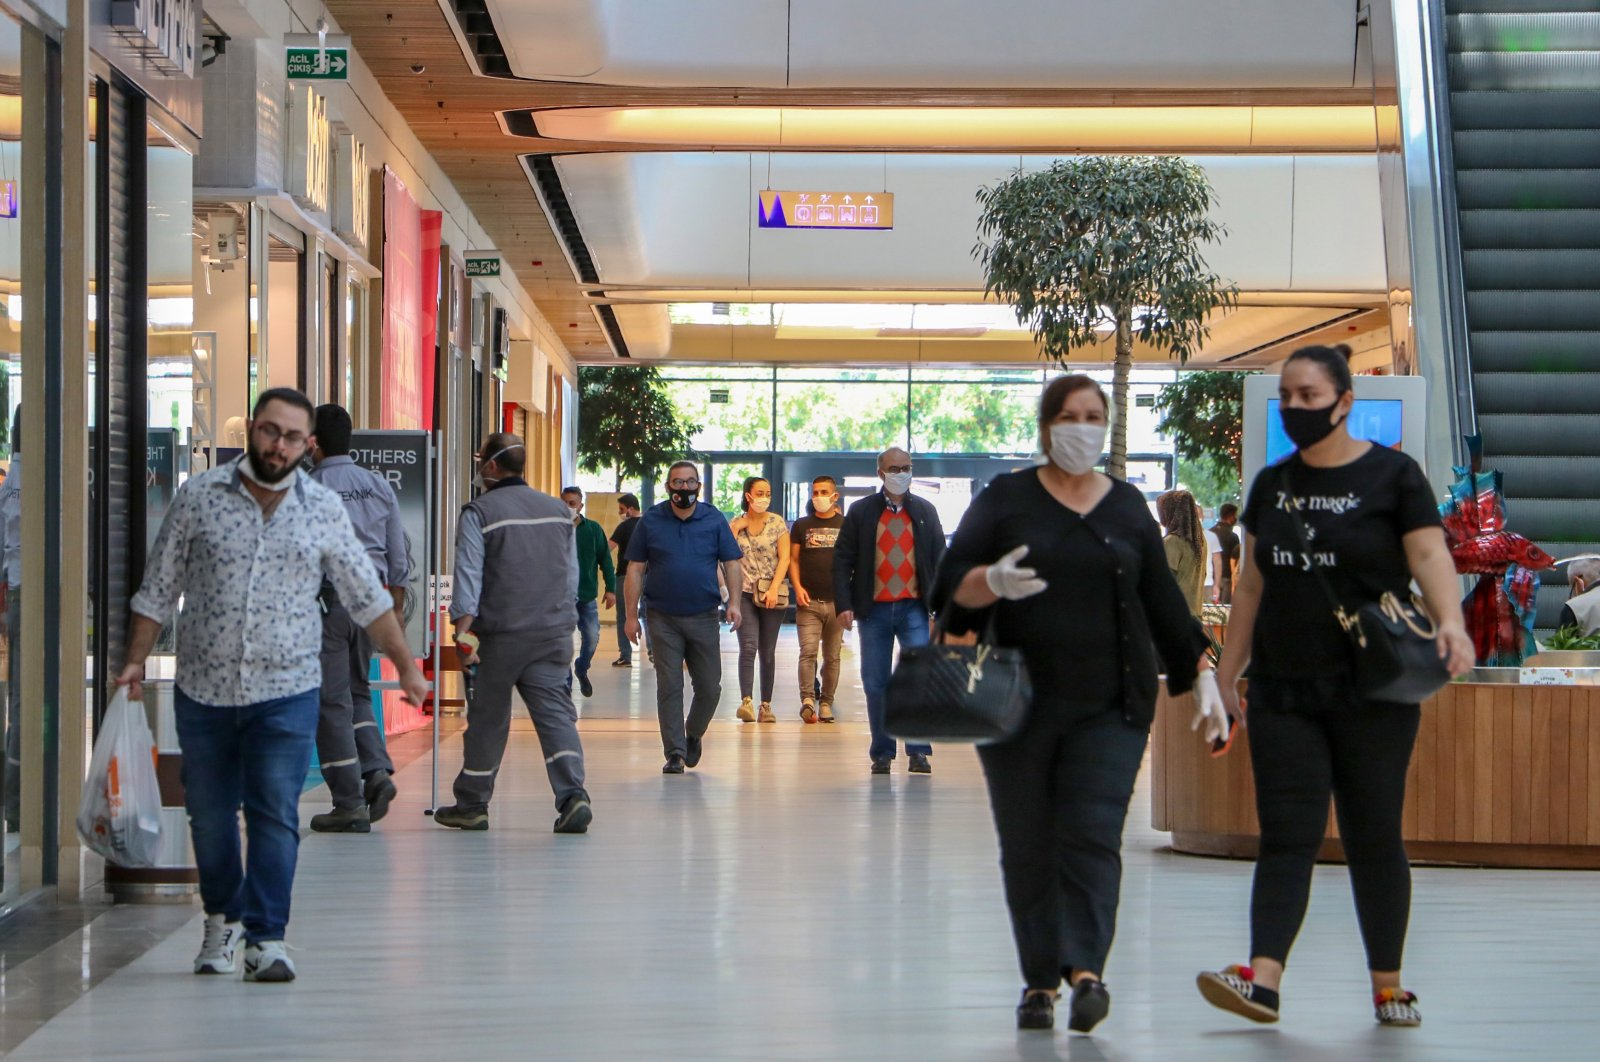 People wearing protective masks walk inside a shopping mall in Antalya, southern Turkey, May 13, 2020. (DHA Photo)